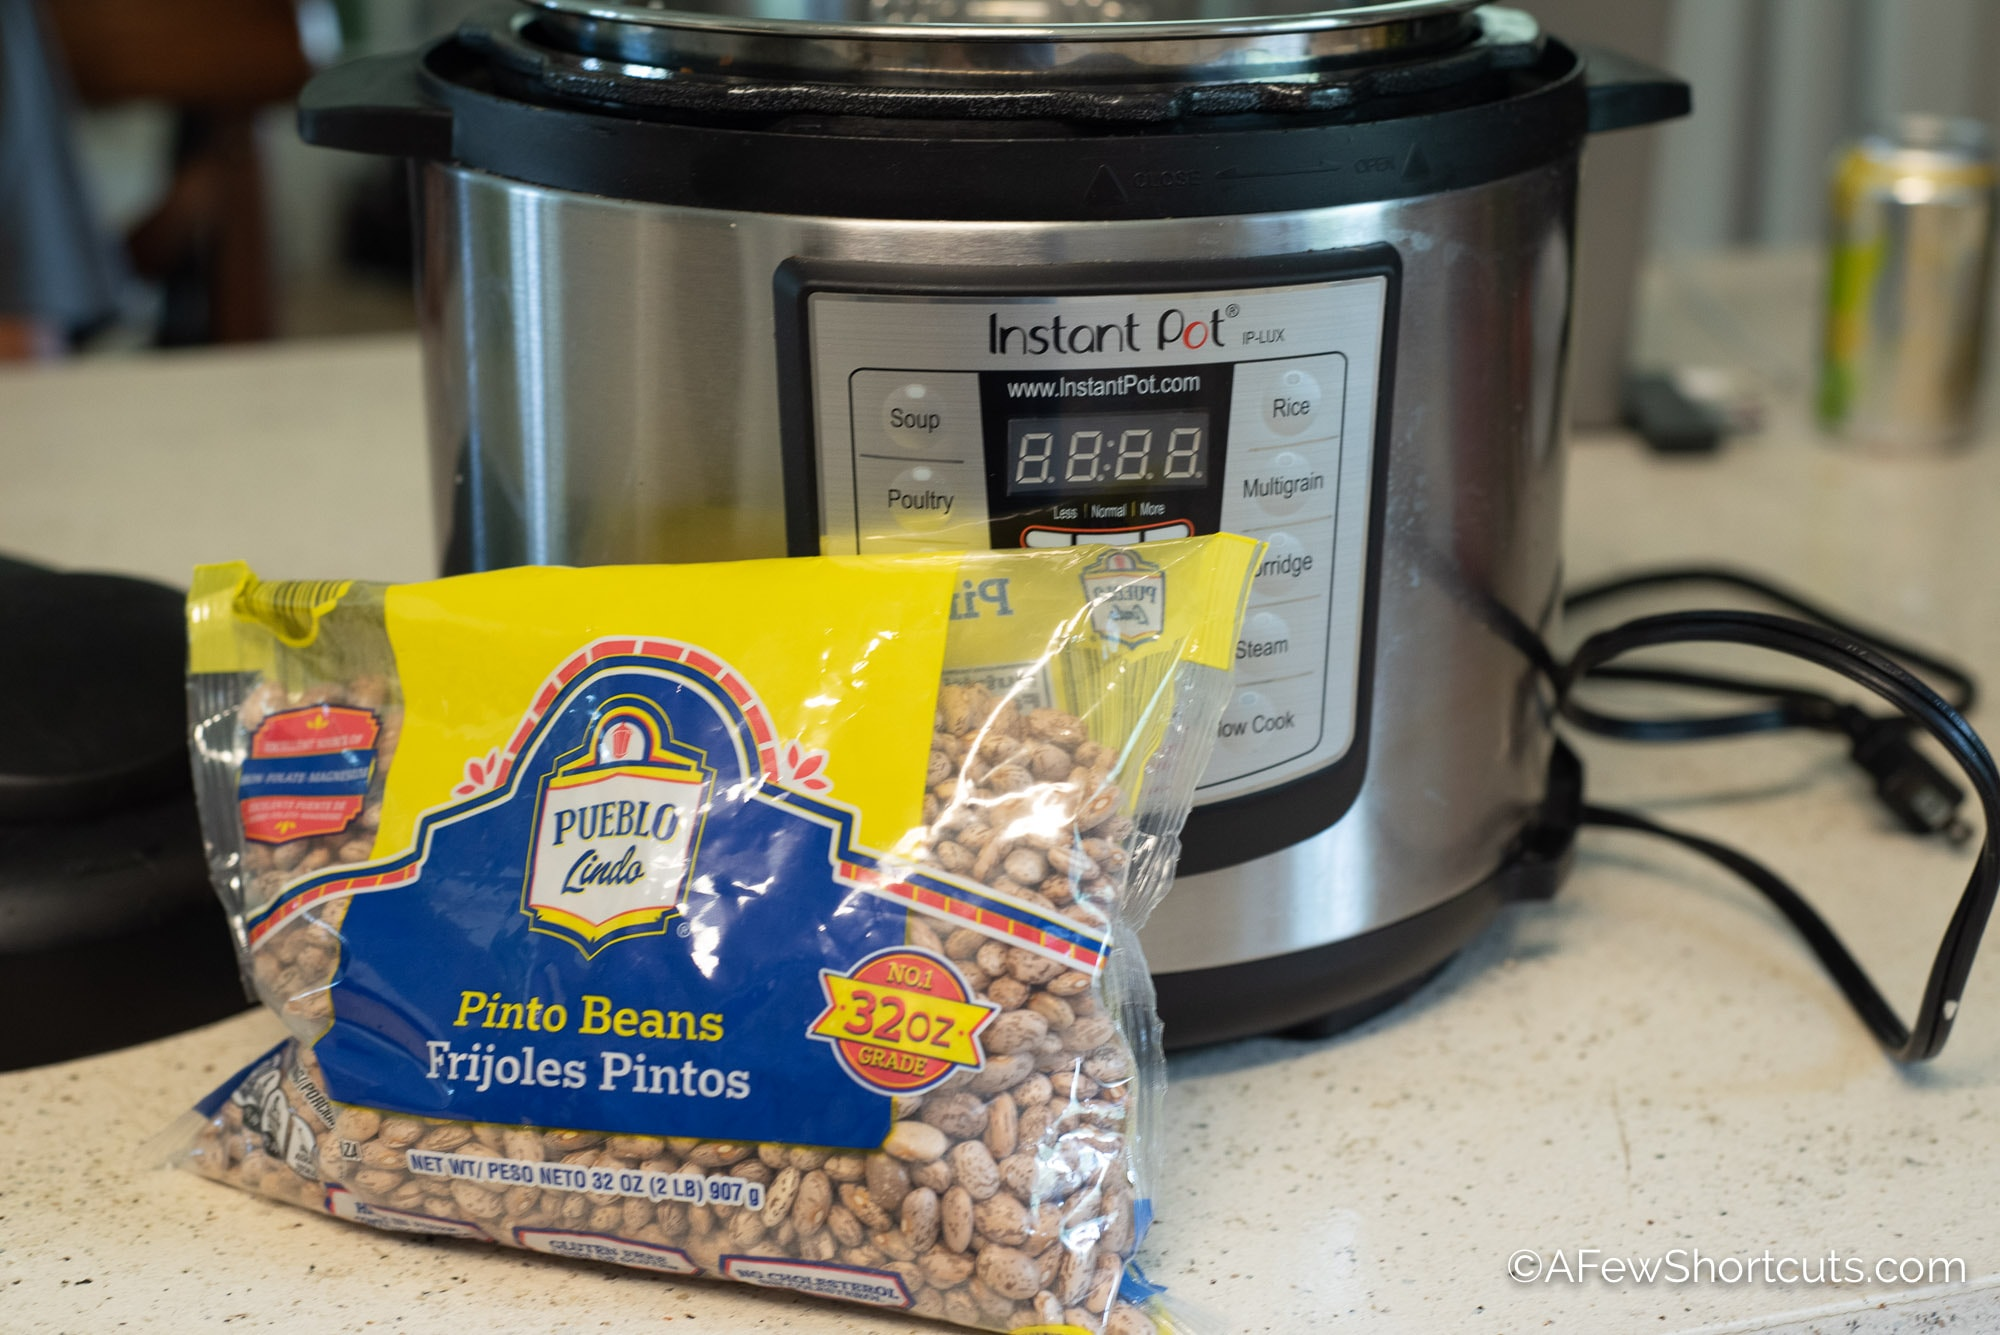 Instant pot and dried pinto beans in bag